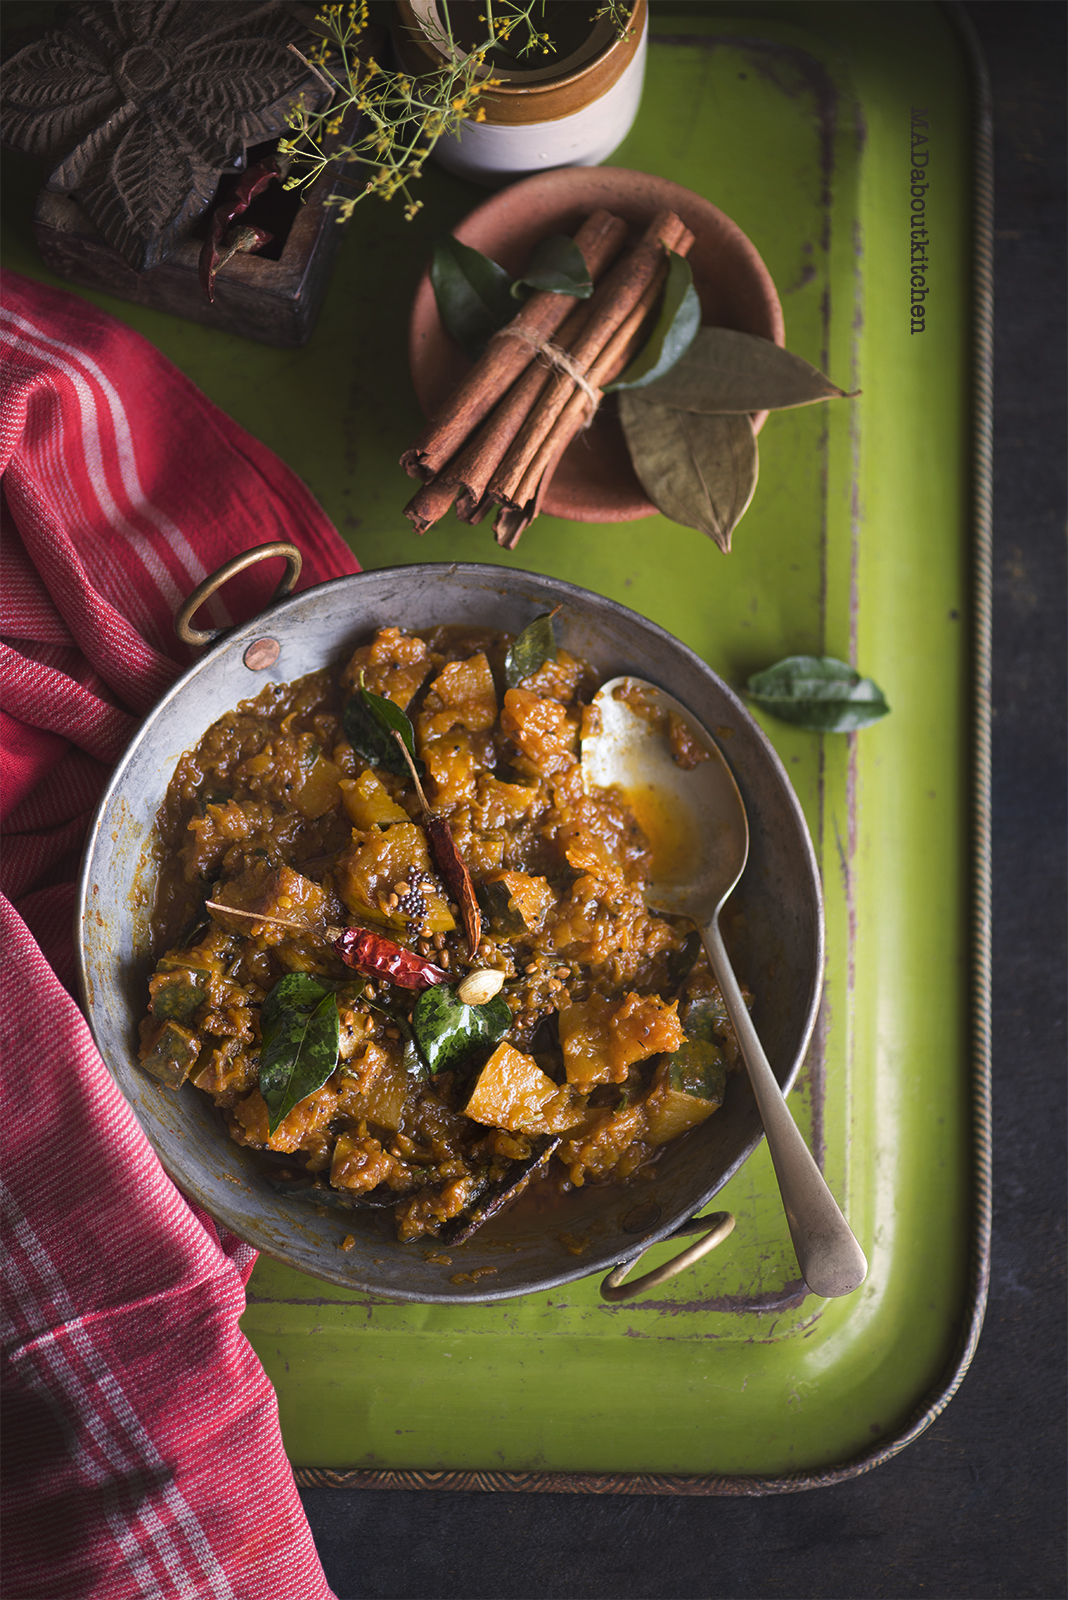 Khatta Meetha Kaddu is an Indian Stir Fry made of Sweet Pumpkin and a whole lot of spices. This stir fry is tangy, sweet and spicy and is usually served with rotis or puris.